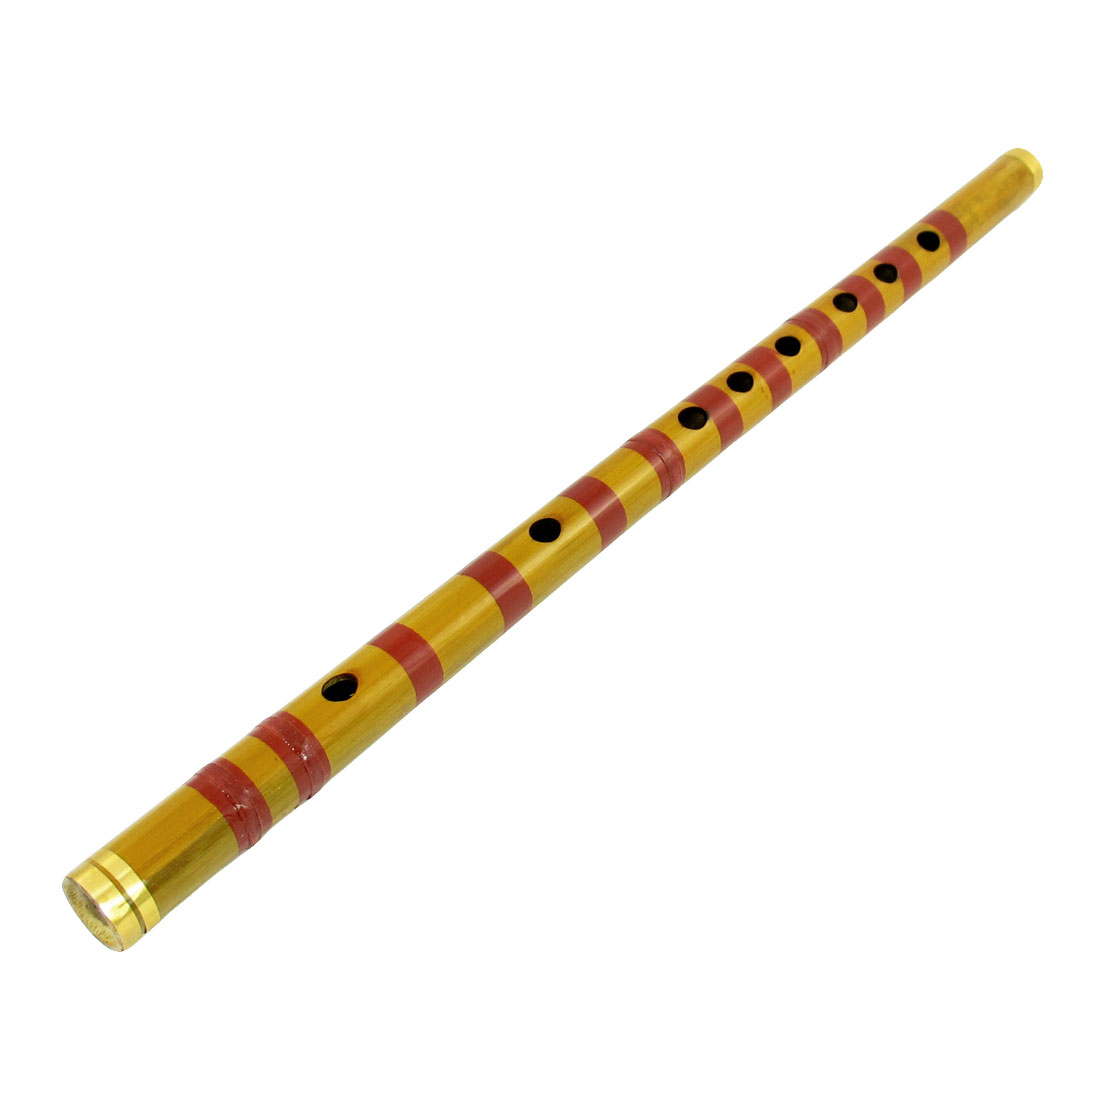 Metal Coated Ends Brown Alto F Dizi 10 Holes Music Chinese Bamboo Flute